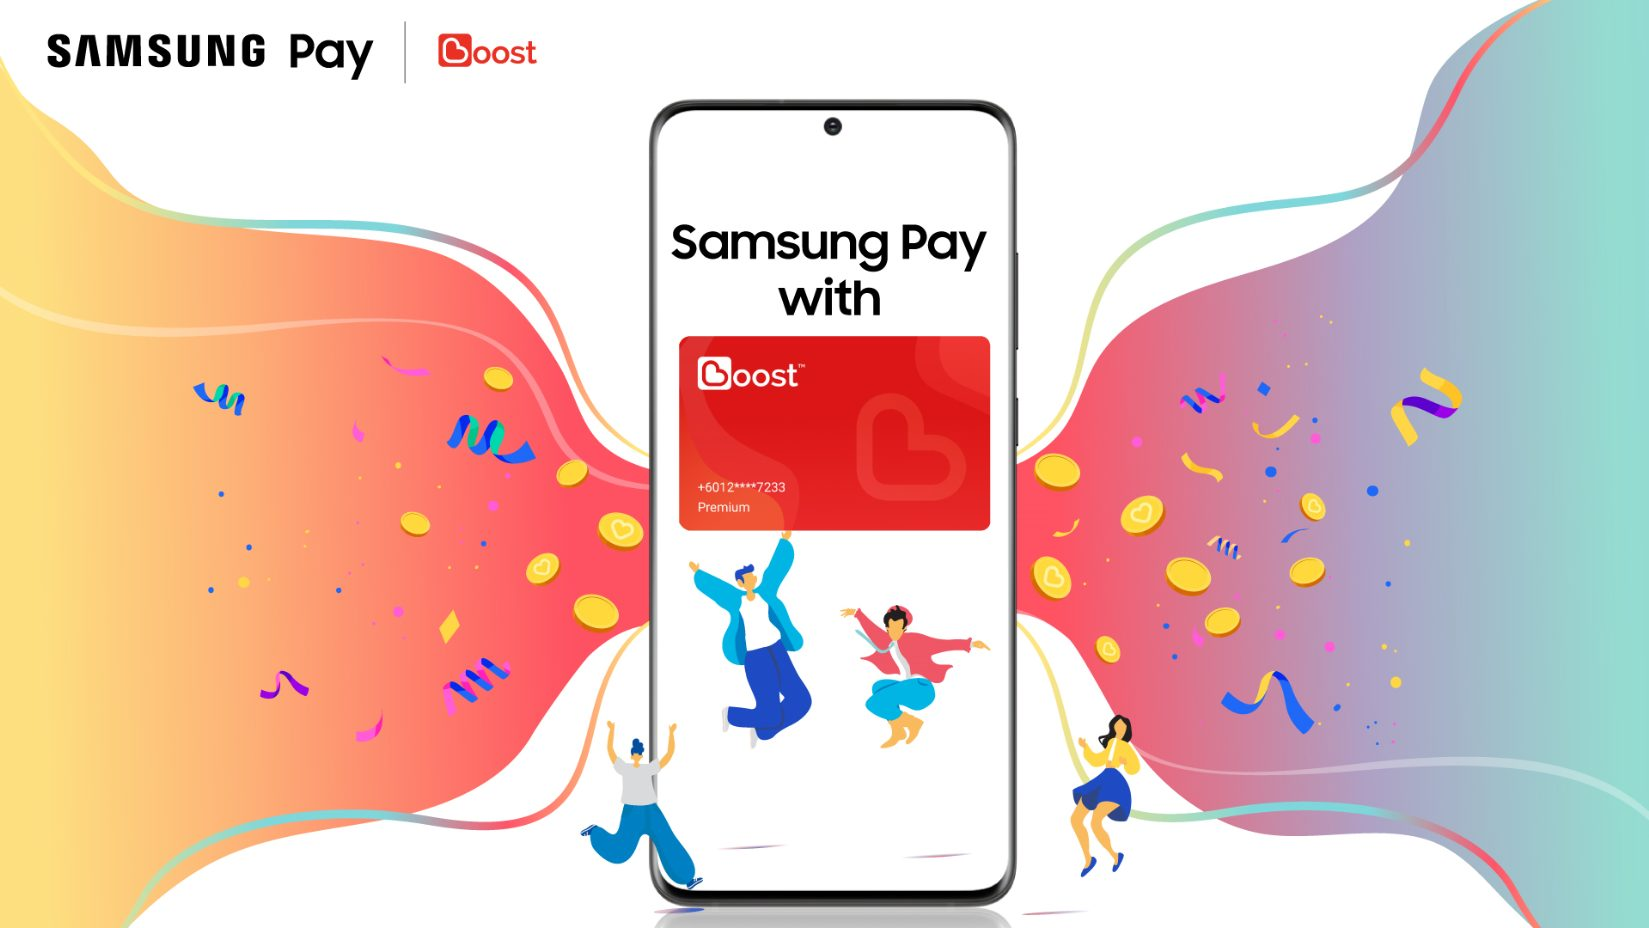 Samsung Pay Boost